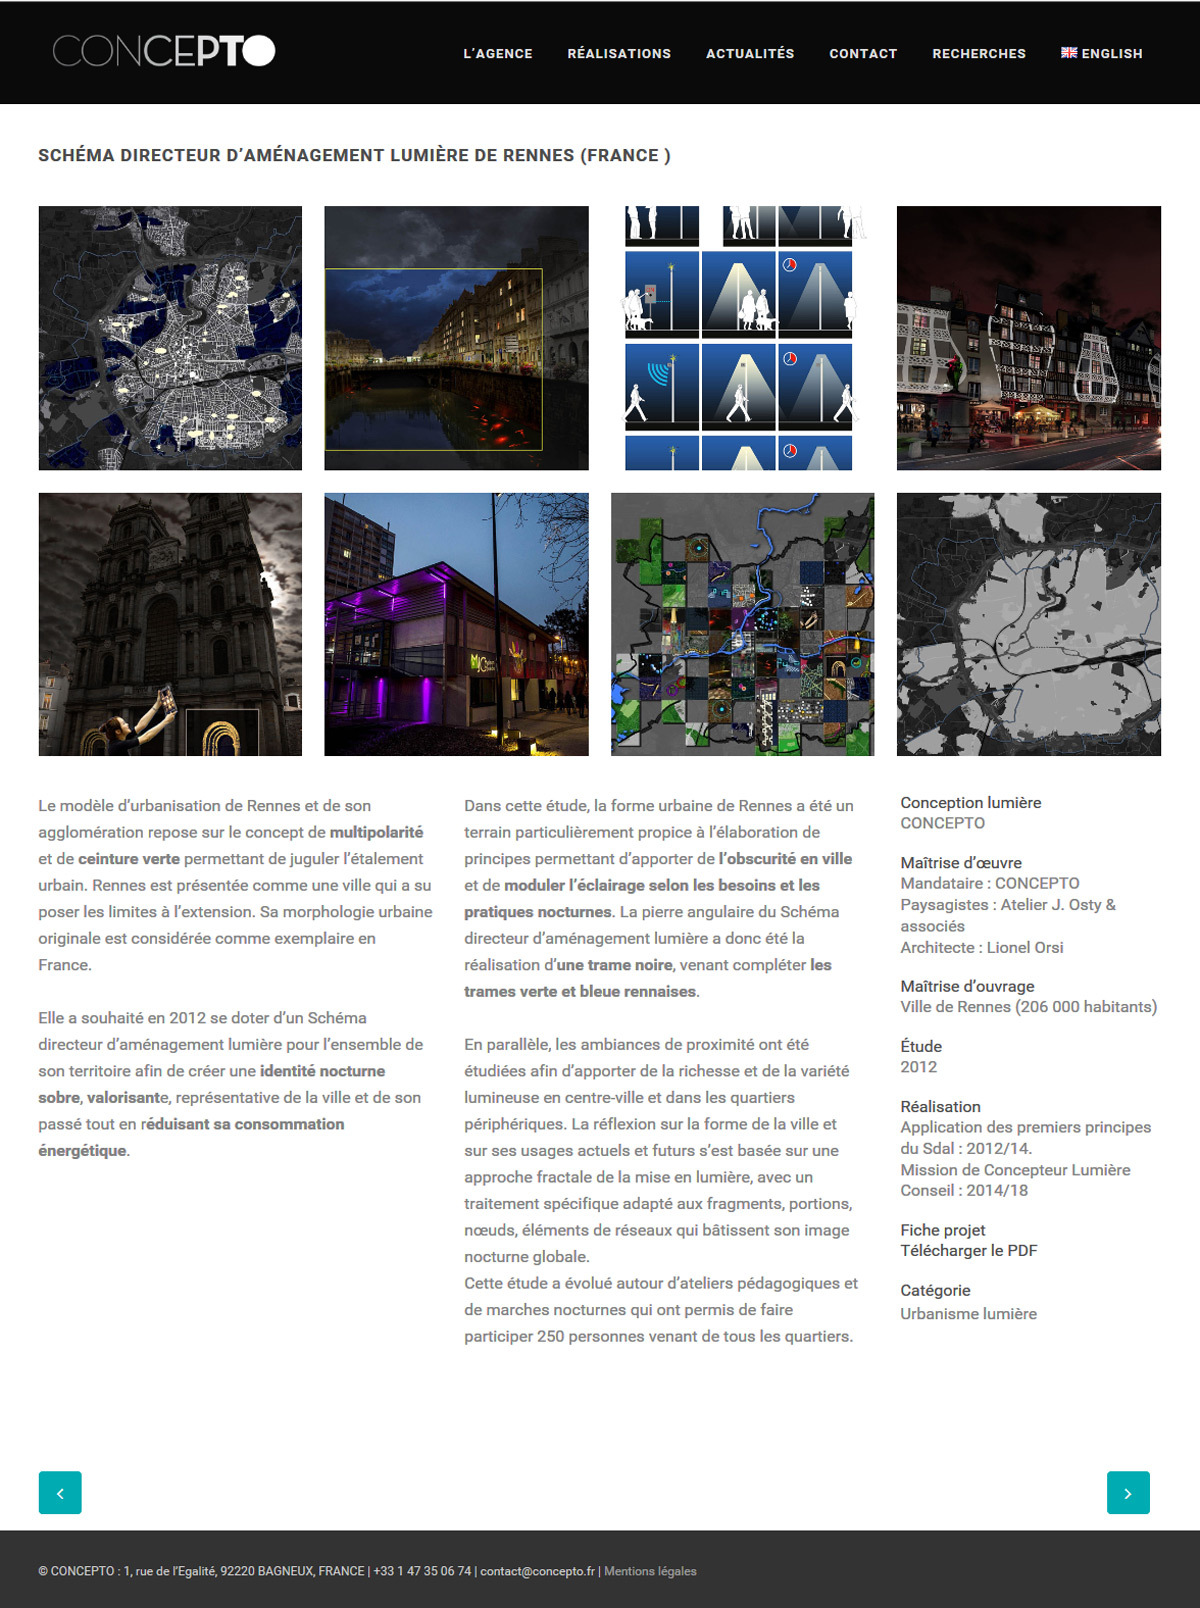 Site-Web-Concepto-Realisations-Sdal-Rennes-2015-©-Concepto